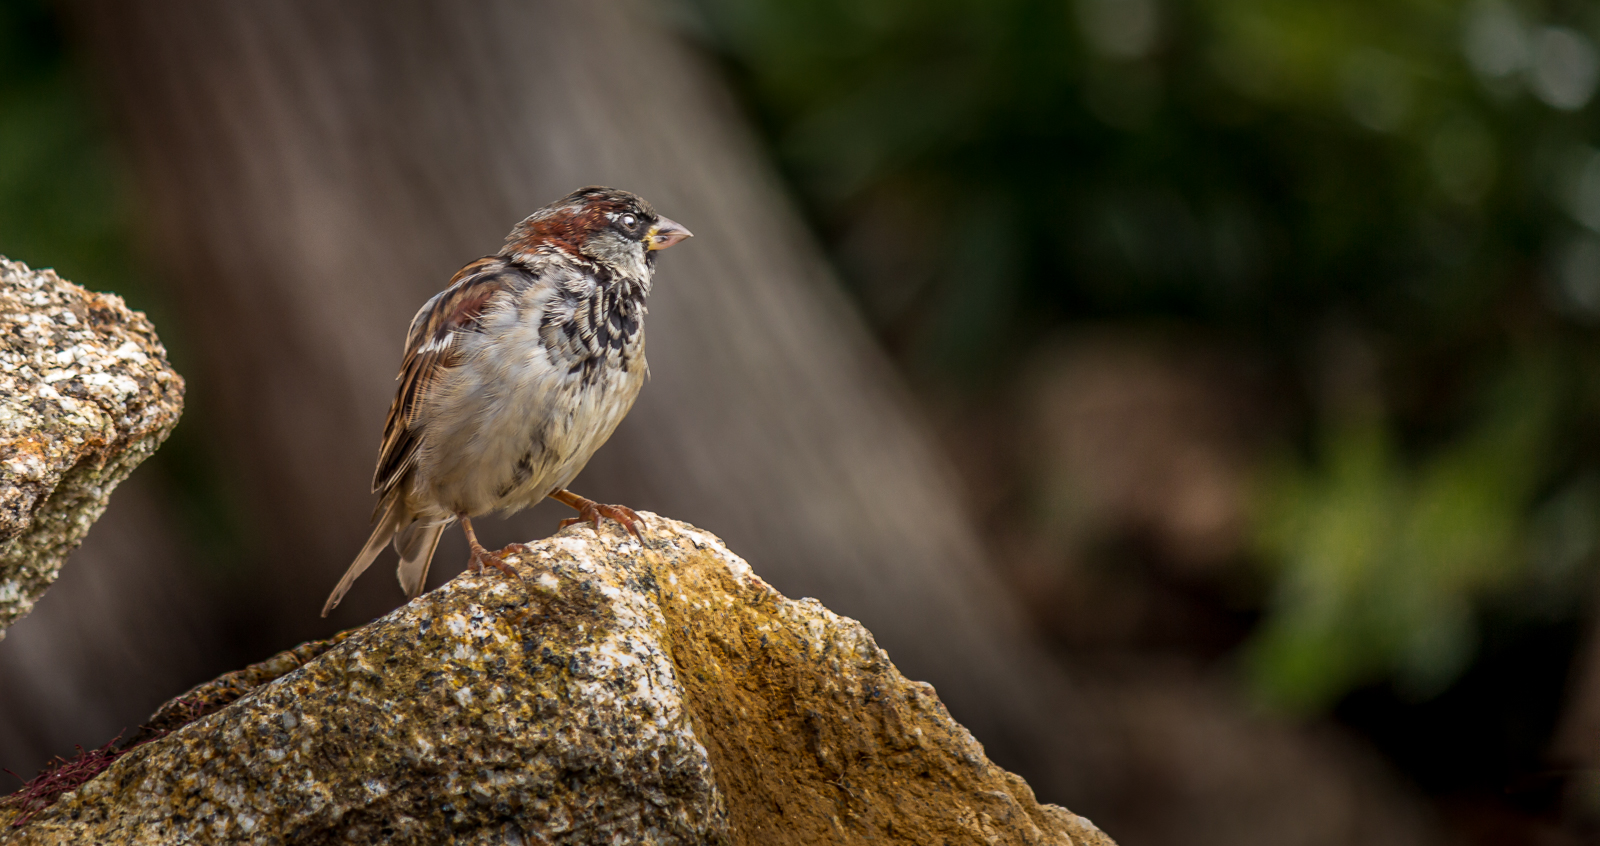 Sparrows are not boring